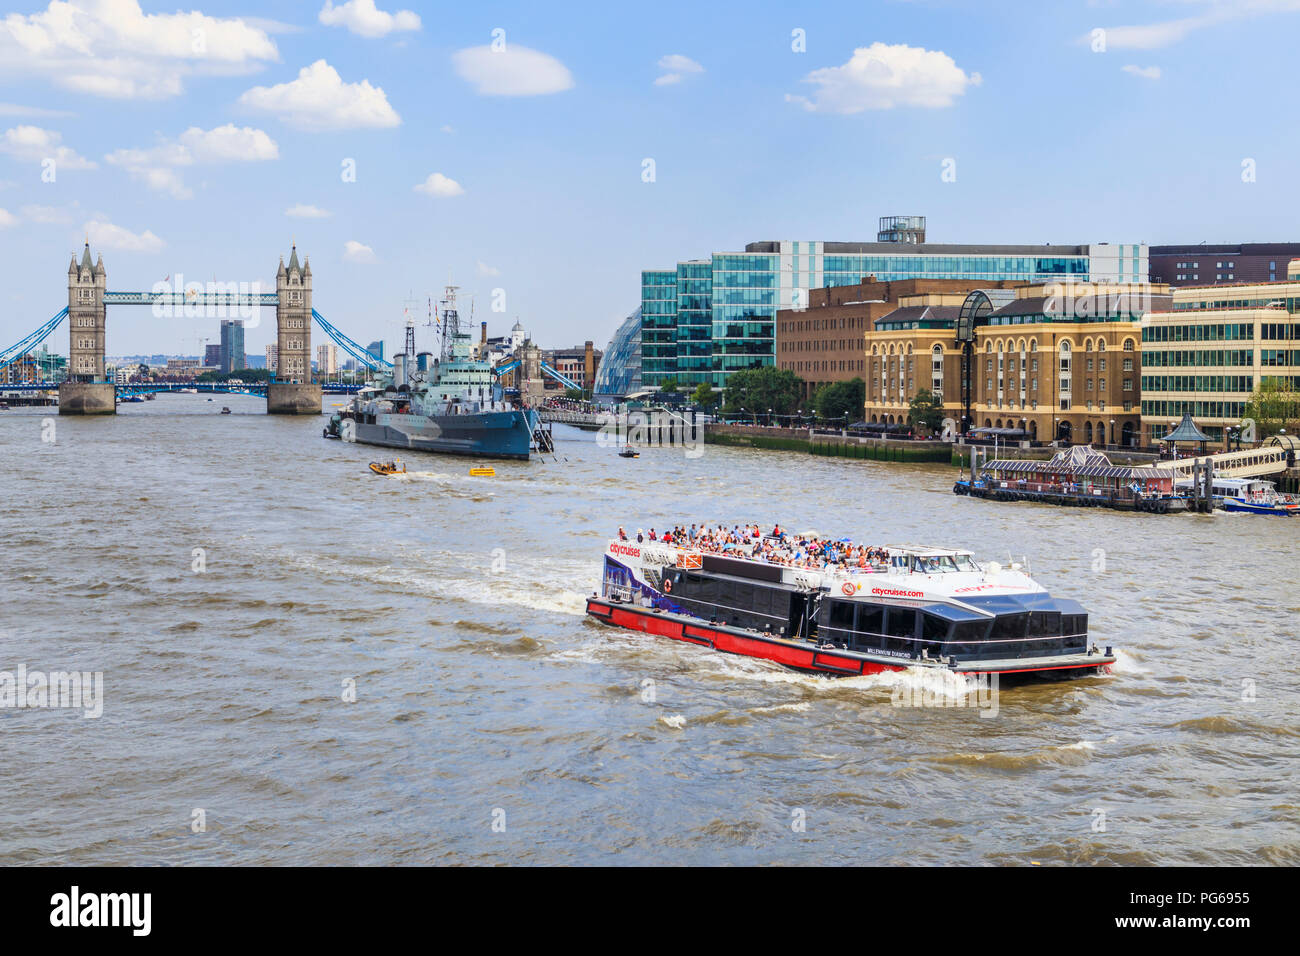 City Cruise riverboat sailing on the River Thames in the Pool of London on a popular tourist sightseeing cruise in summer viewed from London Bridge - Stock Image